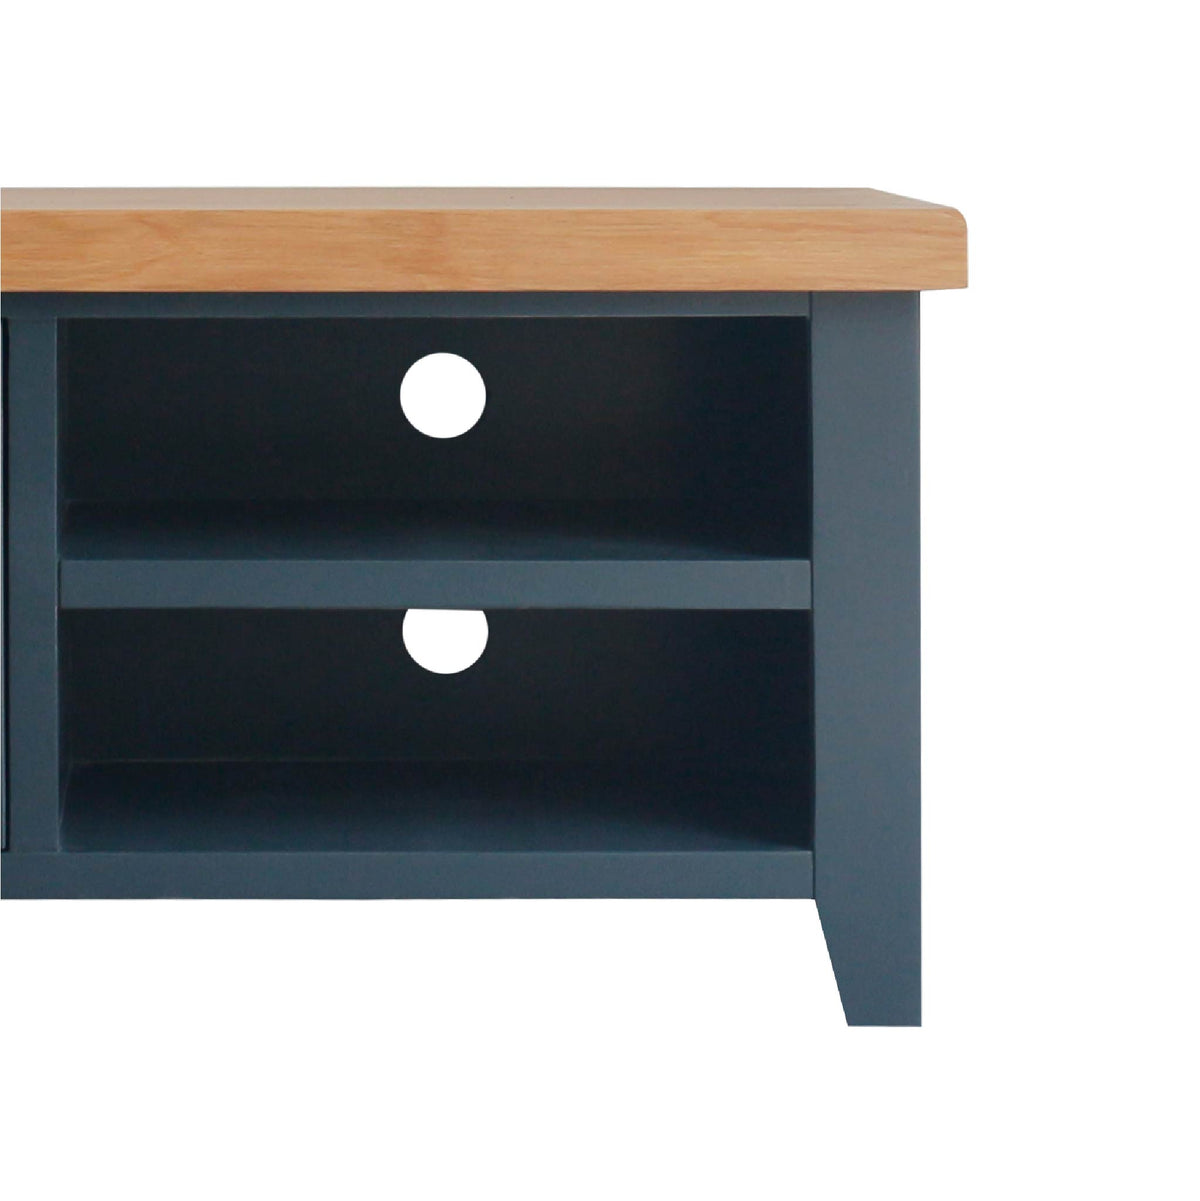 close up of shelves on the Chatsworth Blue 90 cm Small TV Stand from Roseland Furniture